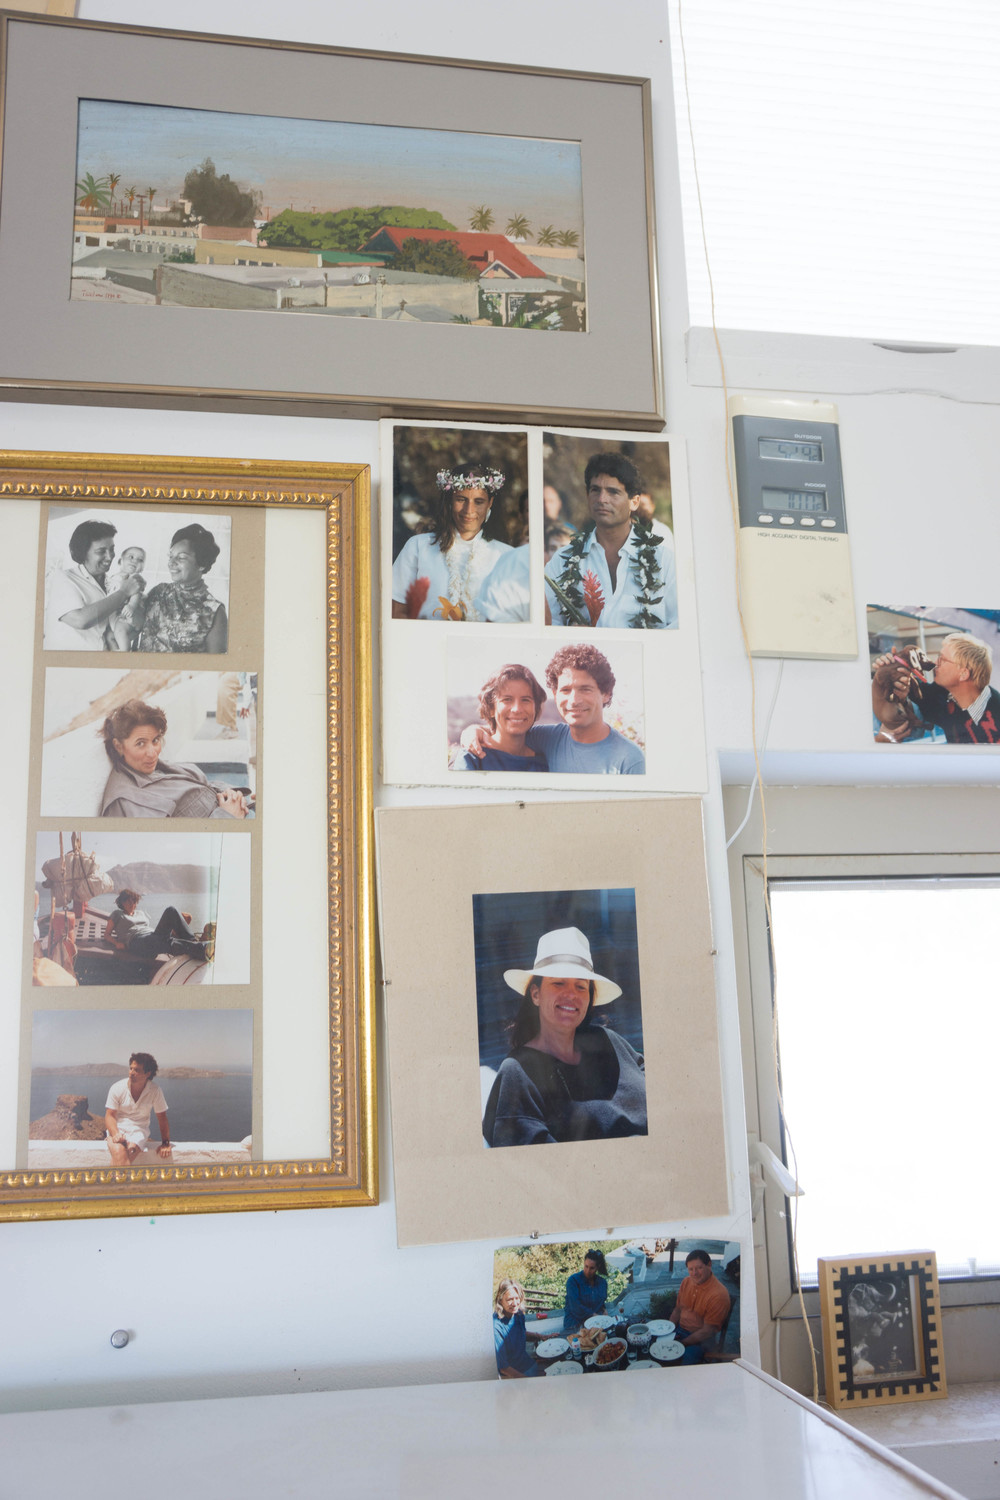 more family photos on a wall adjacent to my kitchen, plus one on the right of david hockney ca. 1980 with his daschund